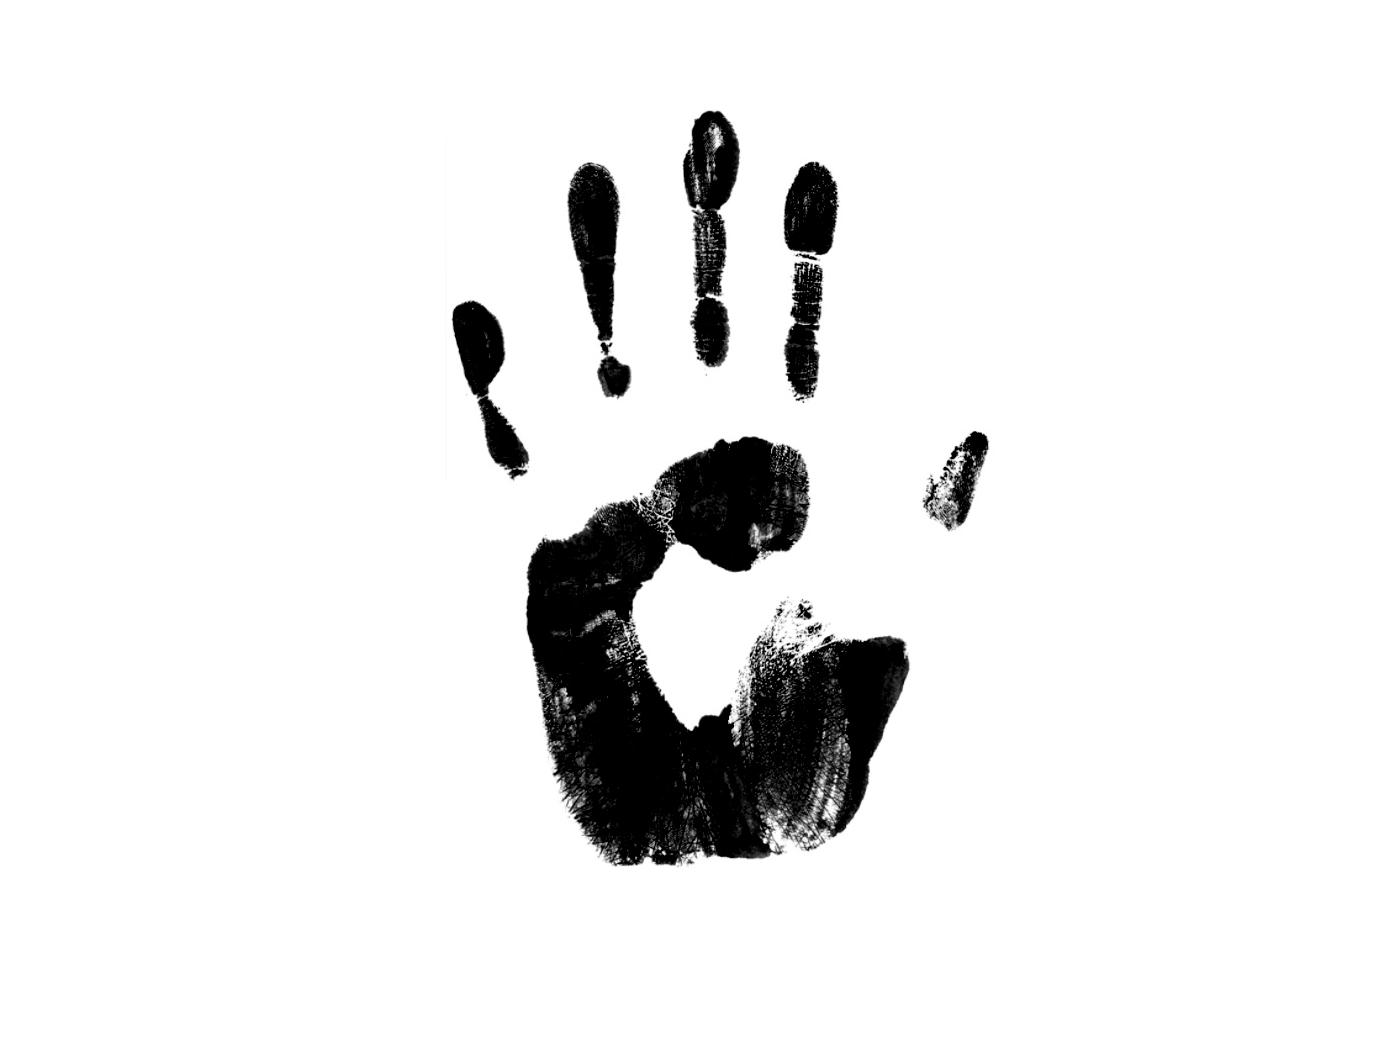 Graphics Hand Black And White